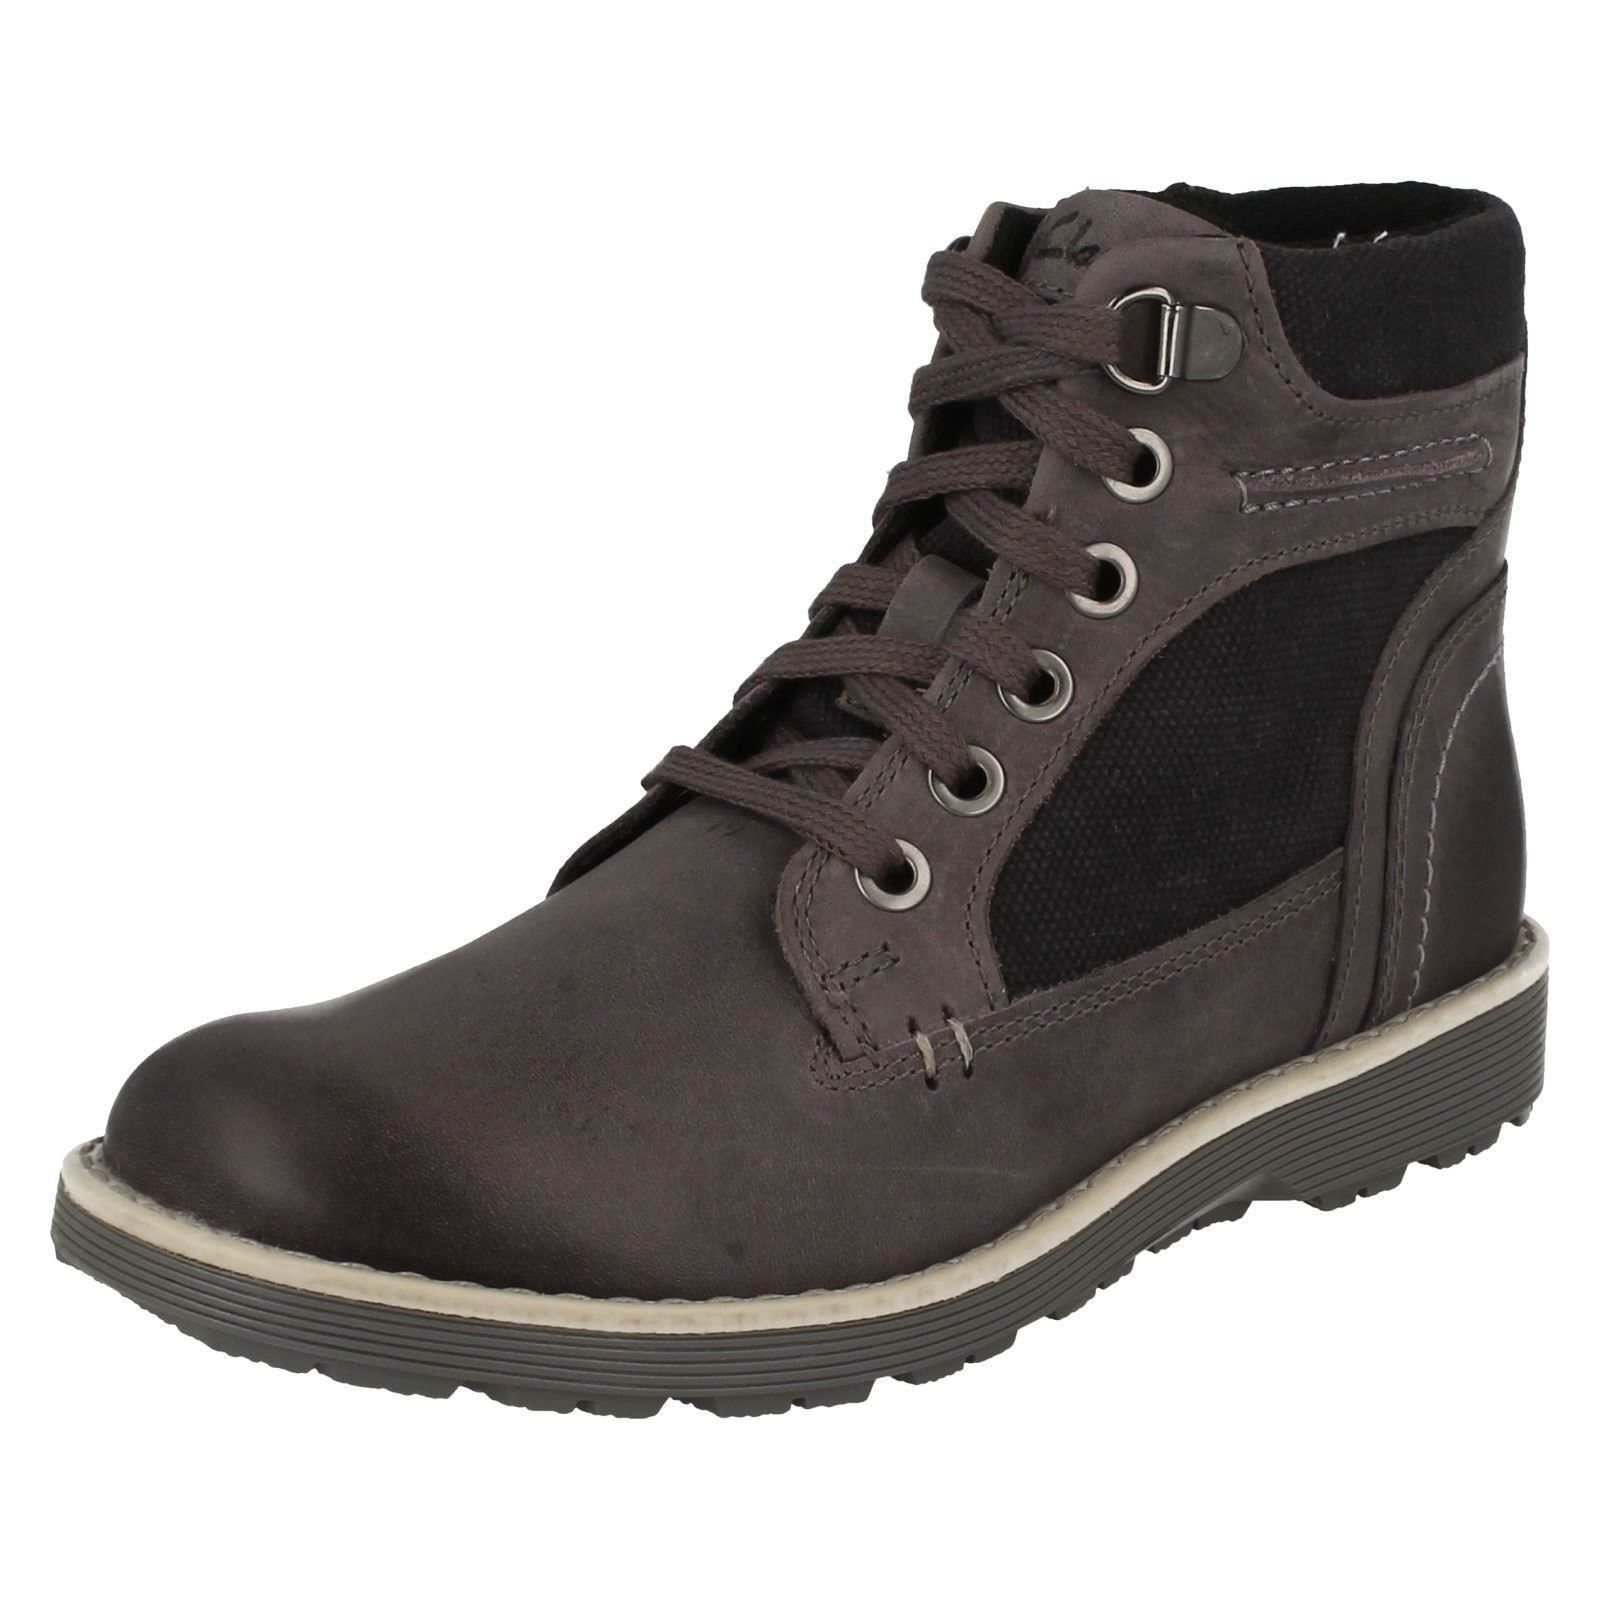 Shop our selection of Winter Boots for boys. Shop Winter Boots clearance and Winter Boots on sale. Free Shipping and Free Returns*.